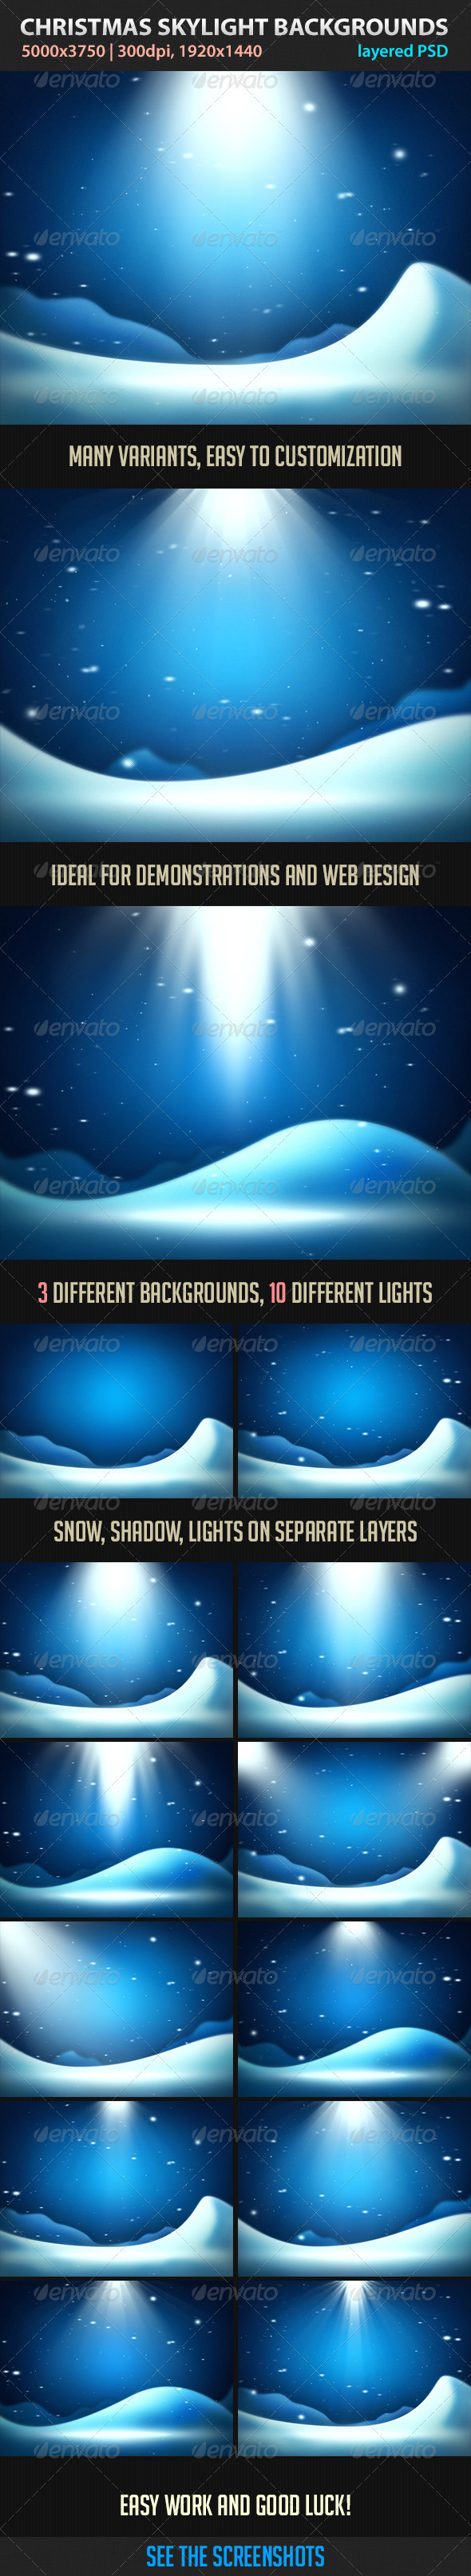 Christmas Skylight Backgrounds - Nature Backgrounds